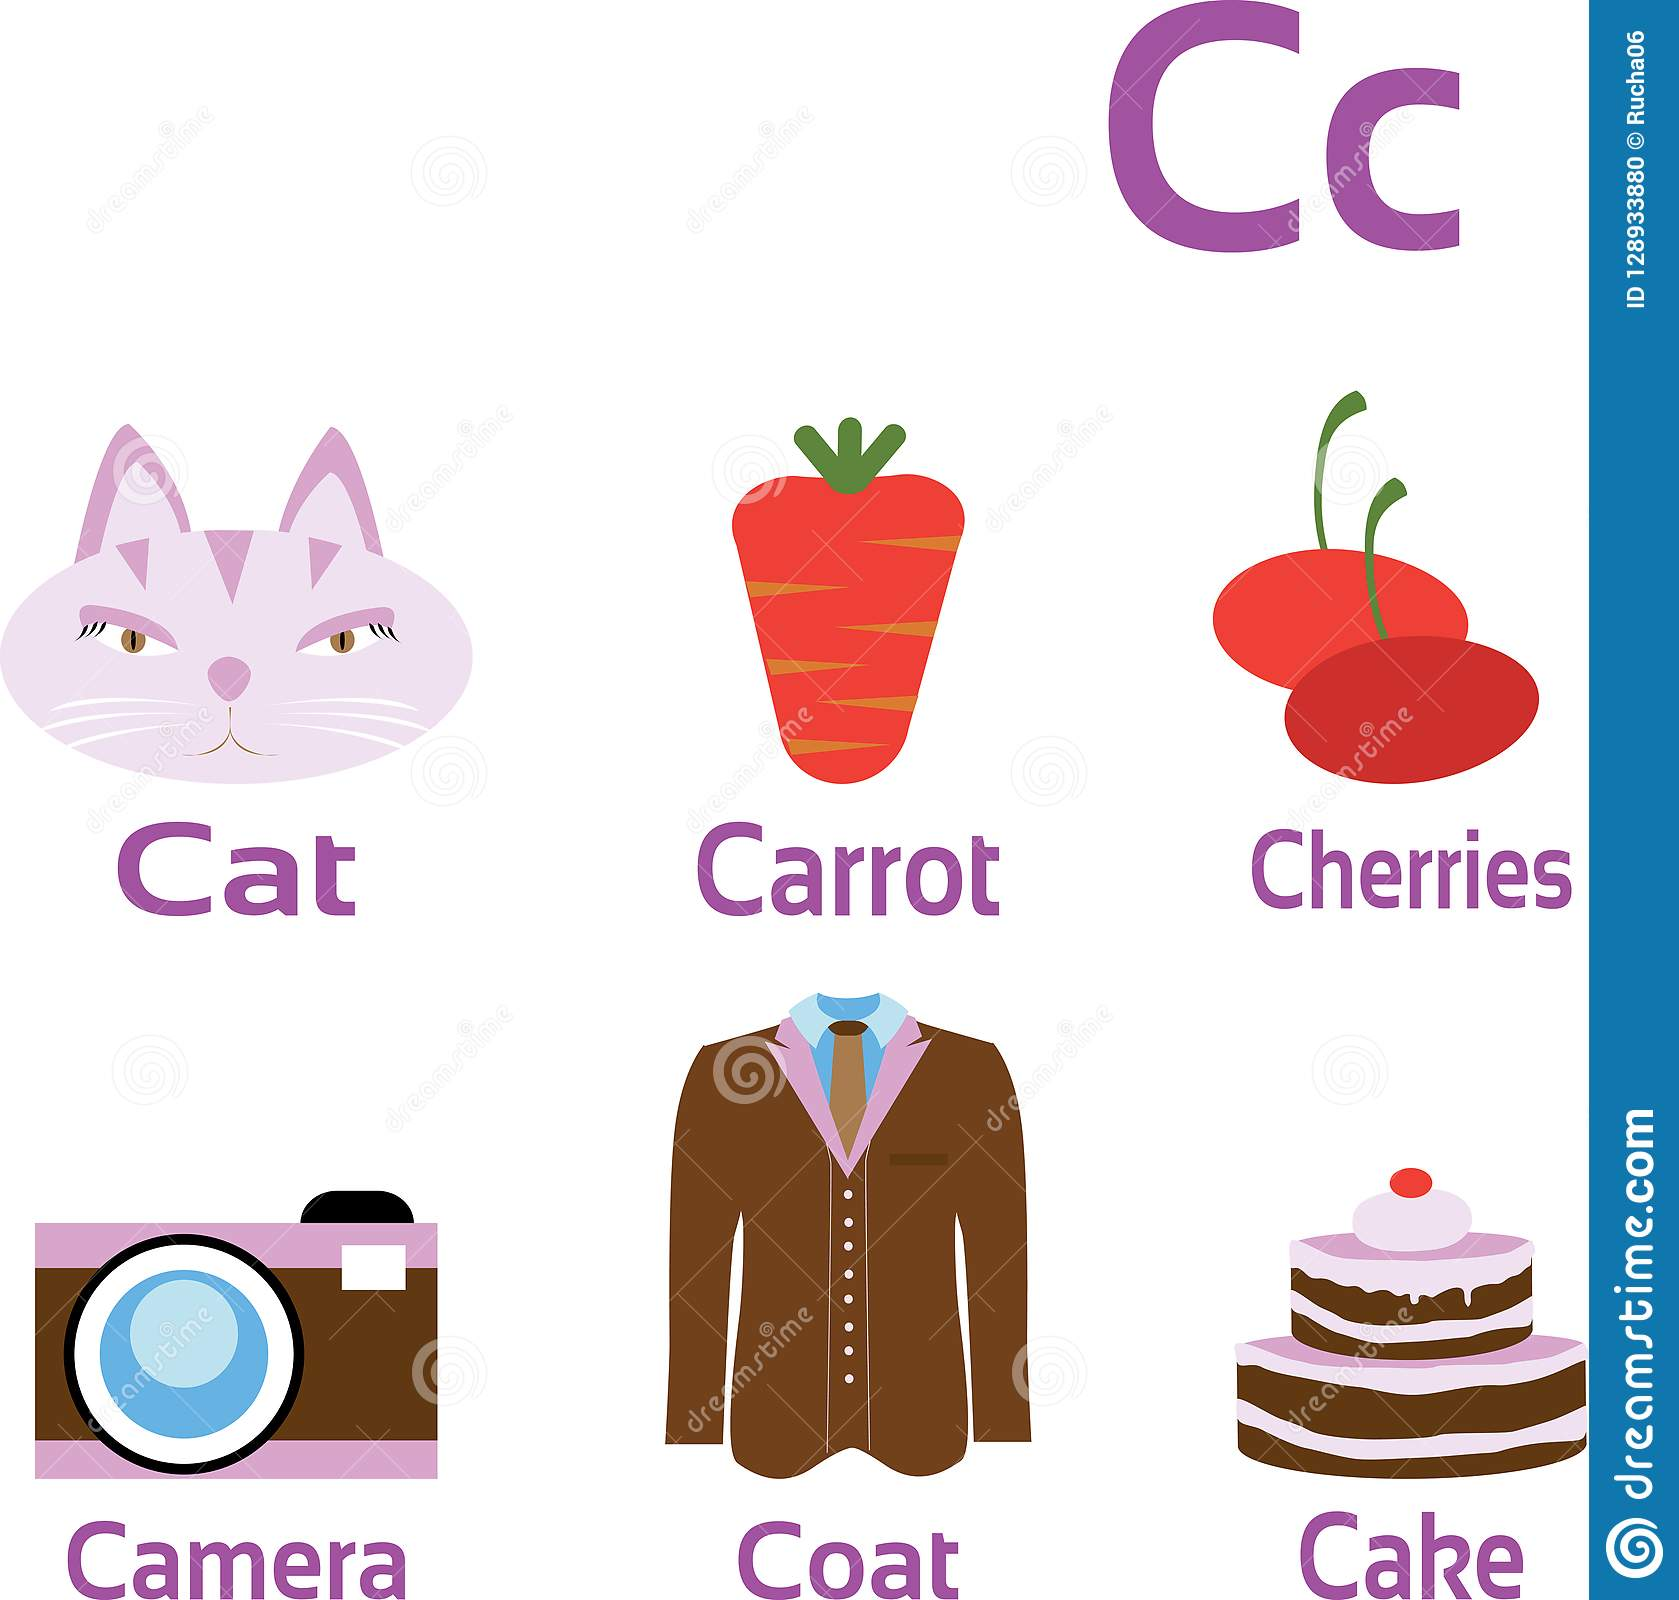 objects and things starting with letter c